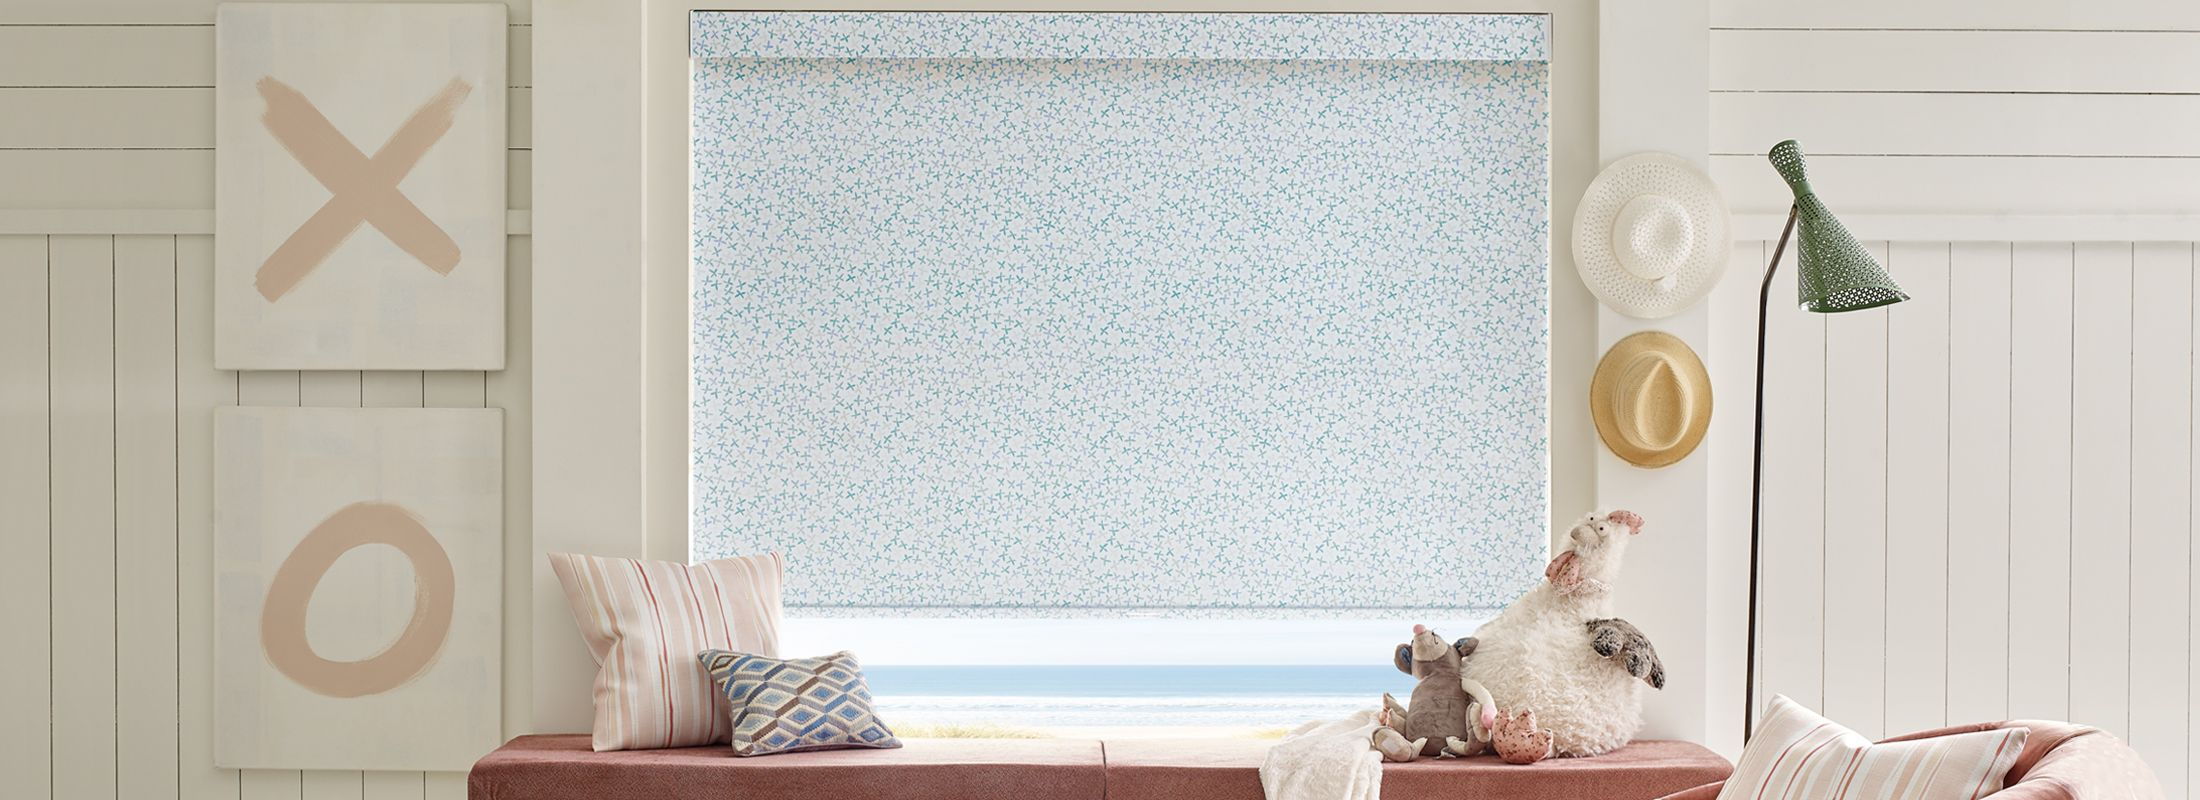 Design Studio Roller Shades in Floral Stamp Green/Blue